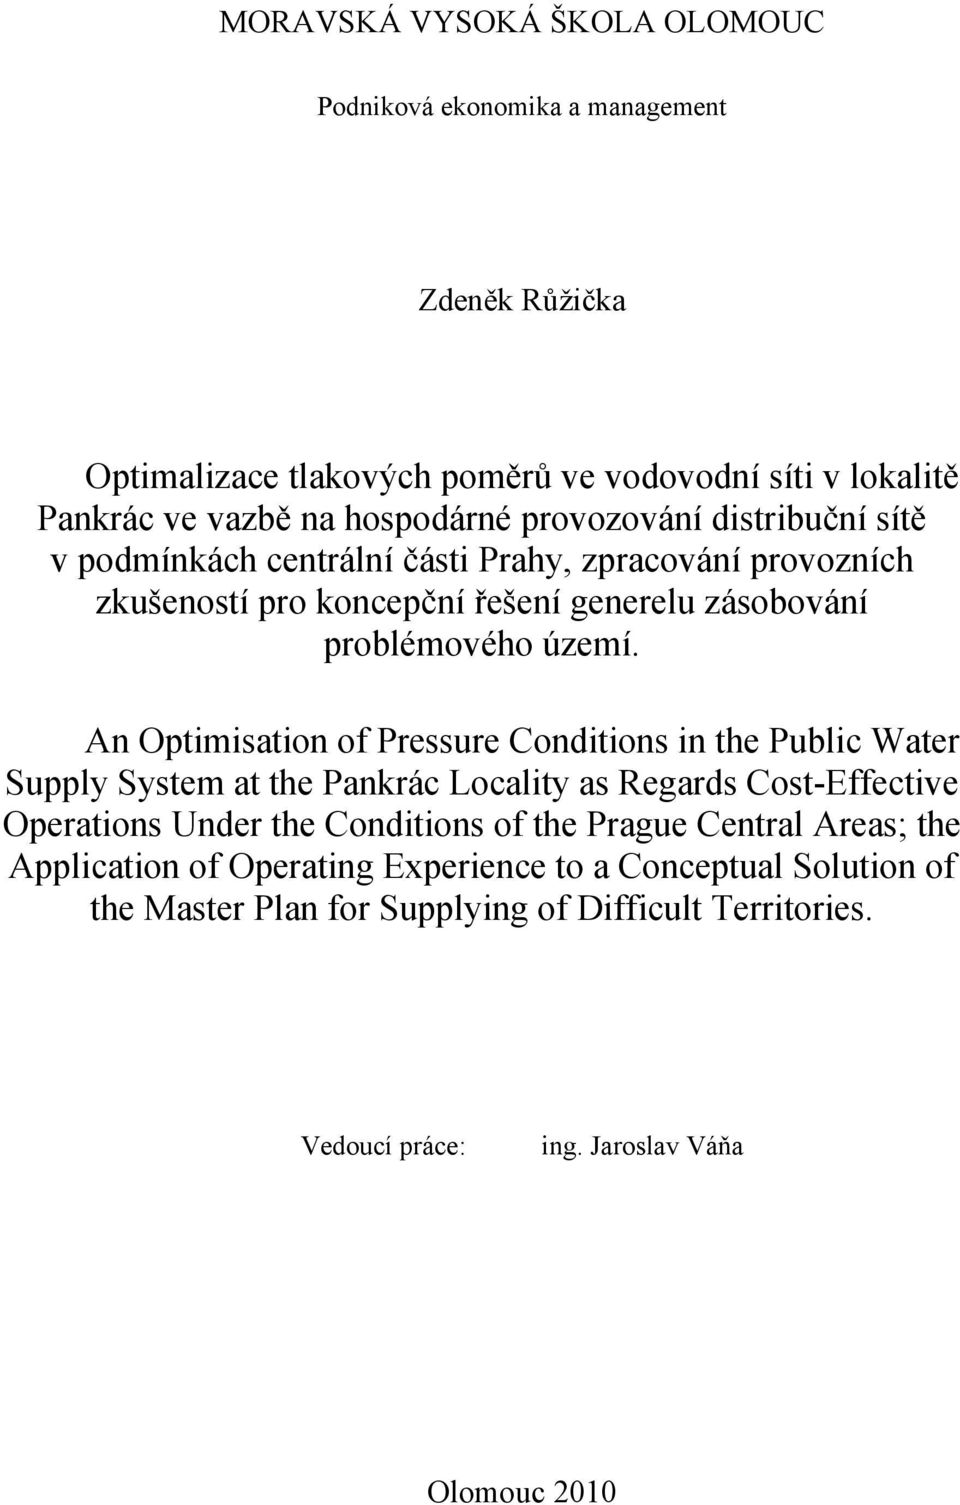 An Optimisation of Pressure Conditions in the Public Water Supply System at the Pankrác Locality as Regards Cost-Effective Operations Under the Conditions of the Prague